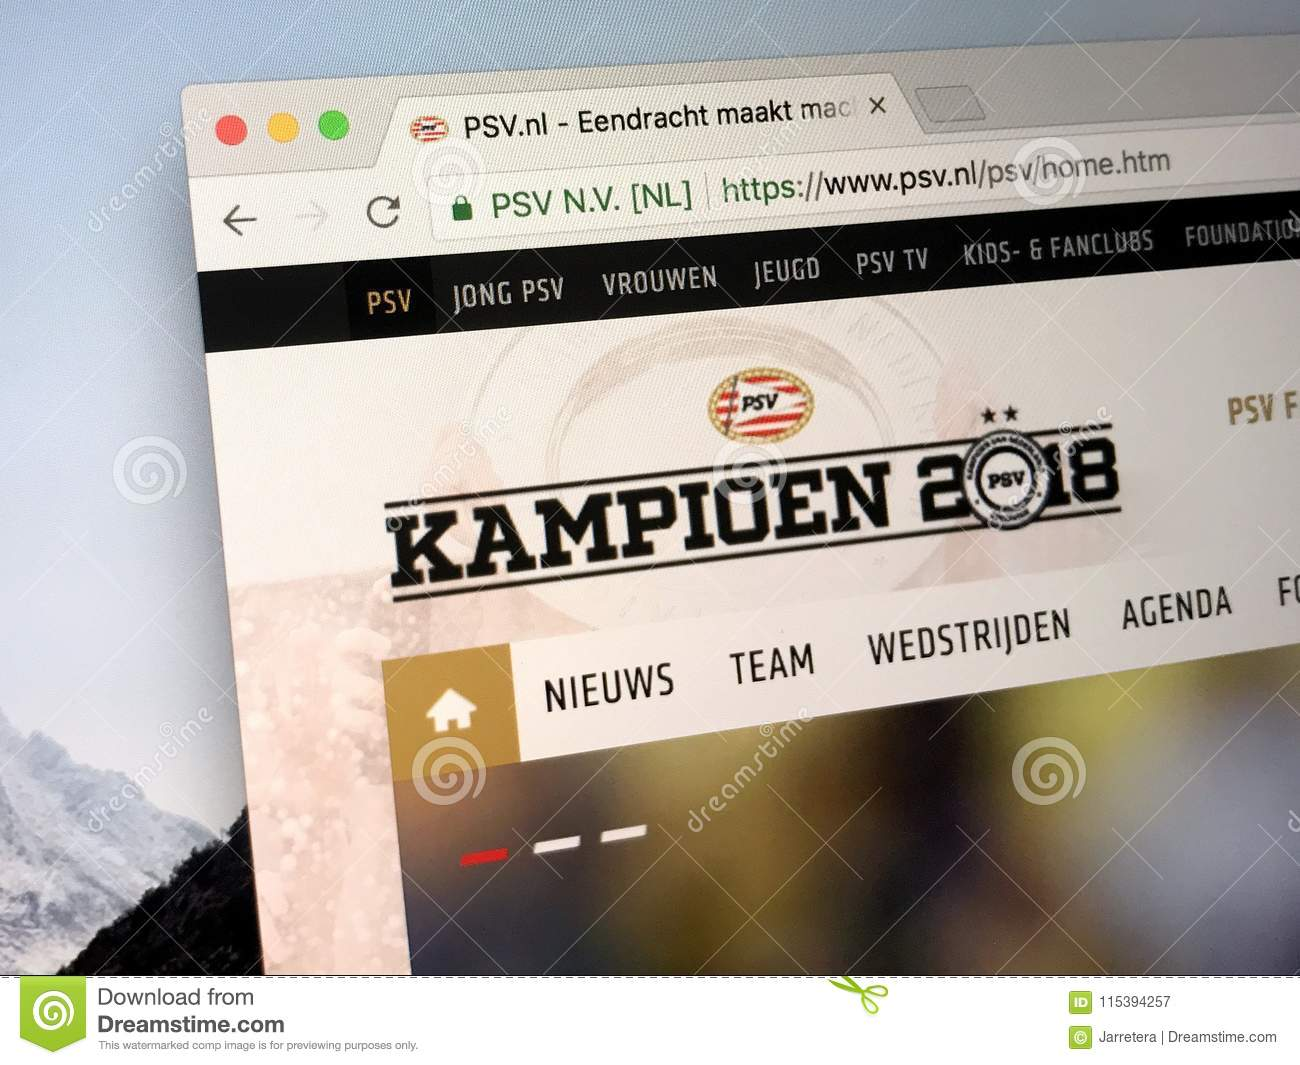 8f4c8b1c6f3 Eindhoven, The Netherlands - March 27, 2018: Homepage of Philips Sports  Union Dutch: The Philips Sport Vereniging , abbreviated as PSV and  internationally ...